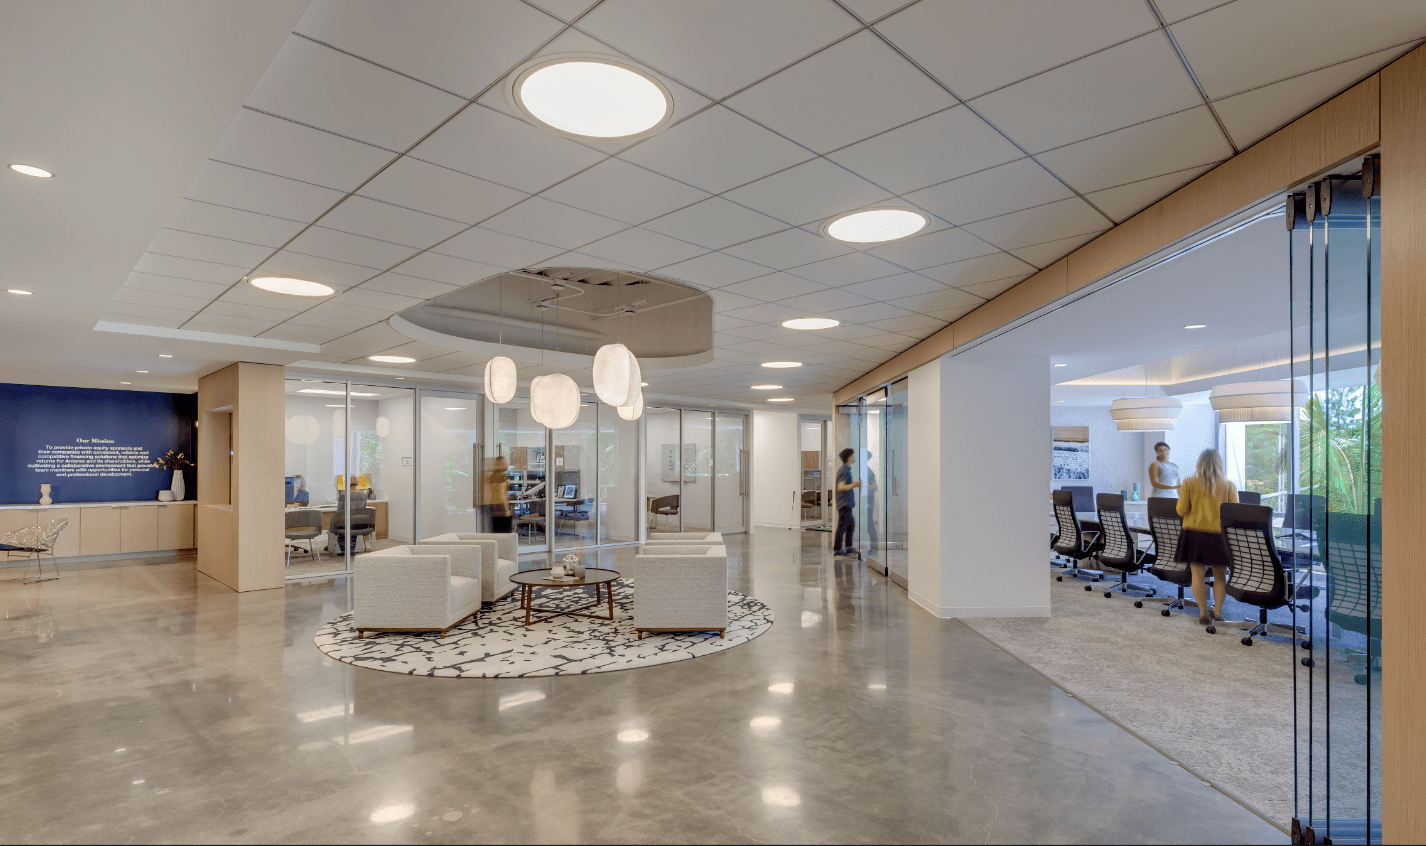 Architects, Contractors Reveal Newest Trends – Office Trends Lean Toward Cool Over Traditional